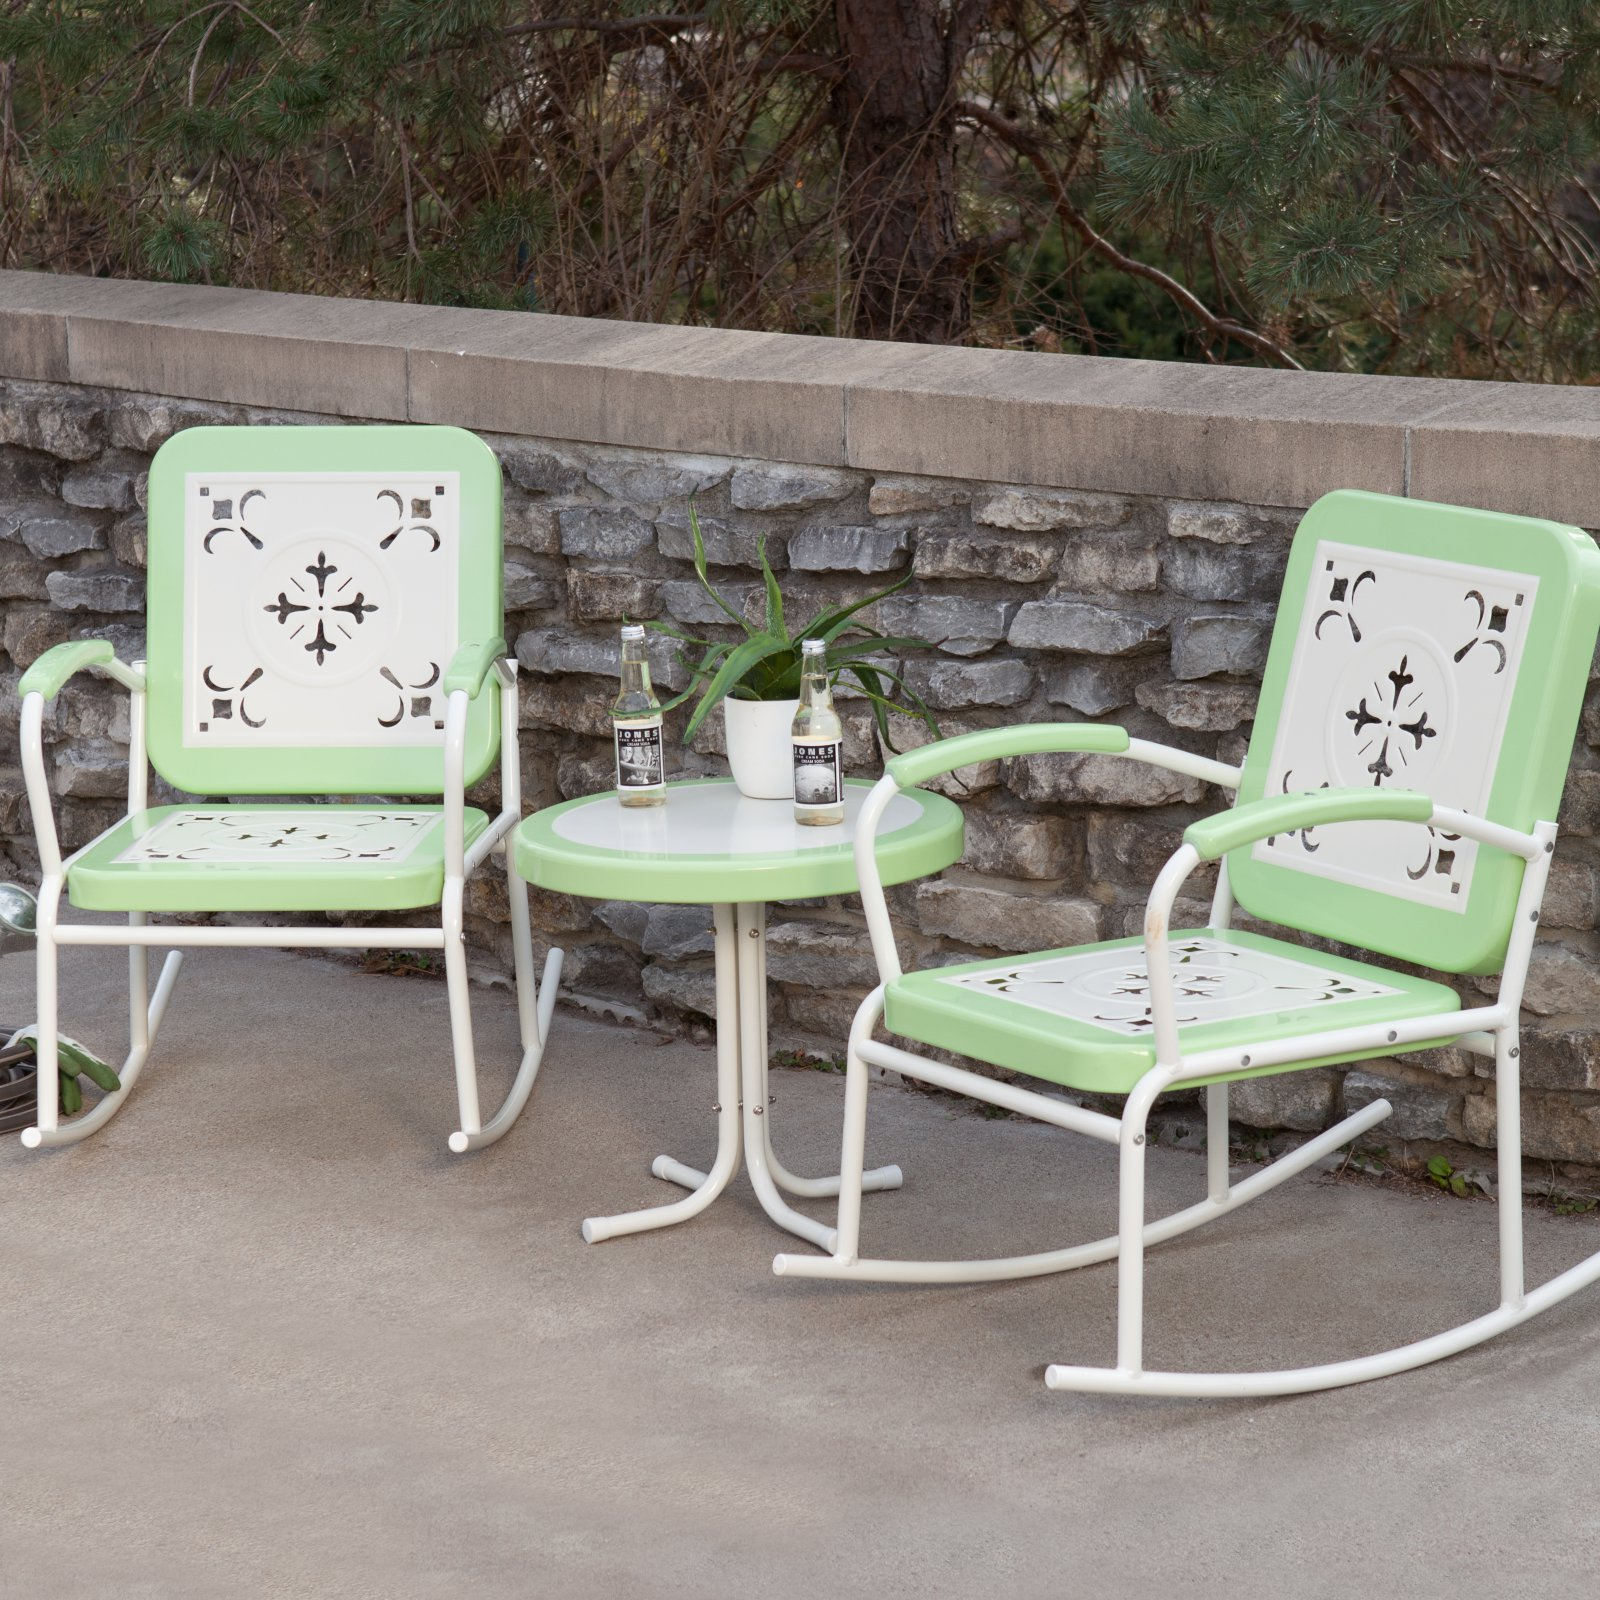 Coral Coast Paradise Cove Retro 3 pc. Metal Rocker Chat Set